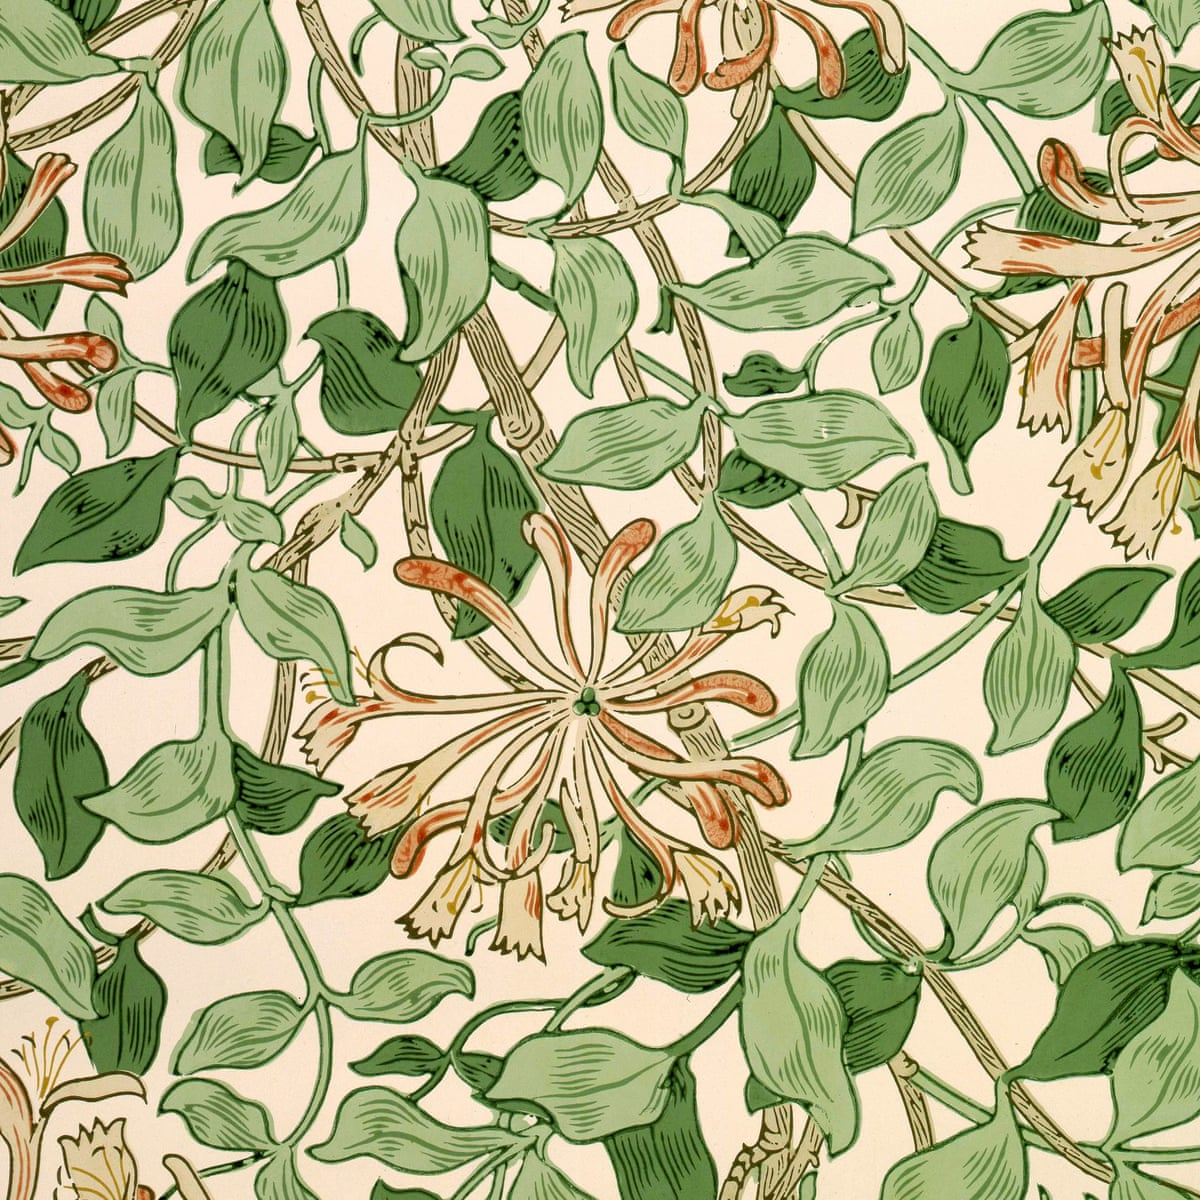 Family Tree The Exquisite Brilliance Of William Morris S Daughter Art And Design The Guardian